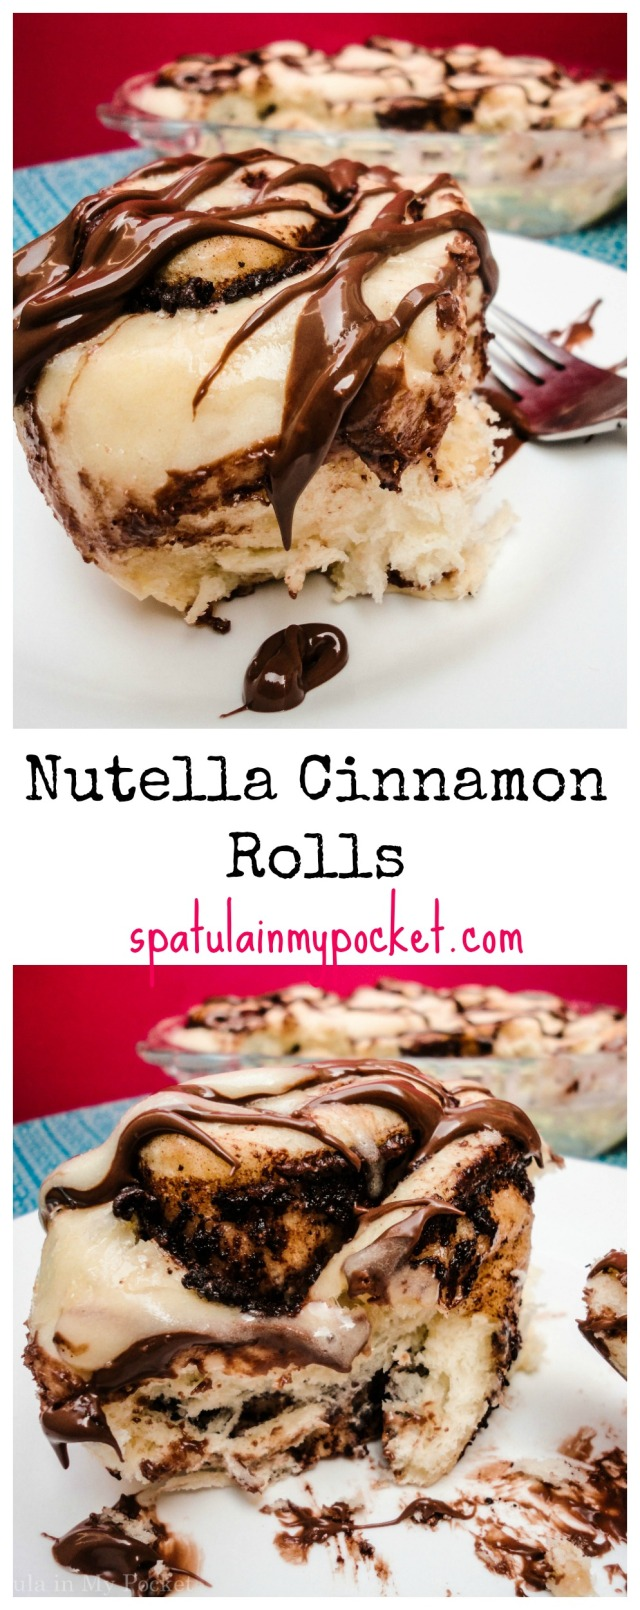 These cinnamon rolls are what dreams are made of! They'll leave you scraping the plate clean and wanting more.